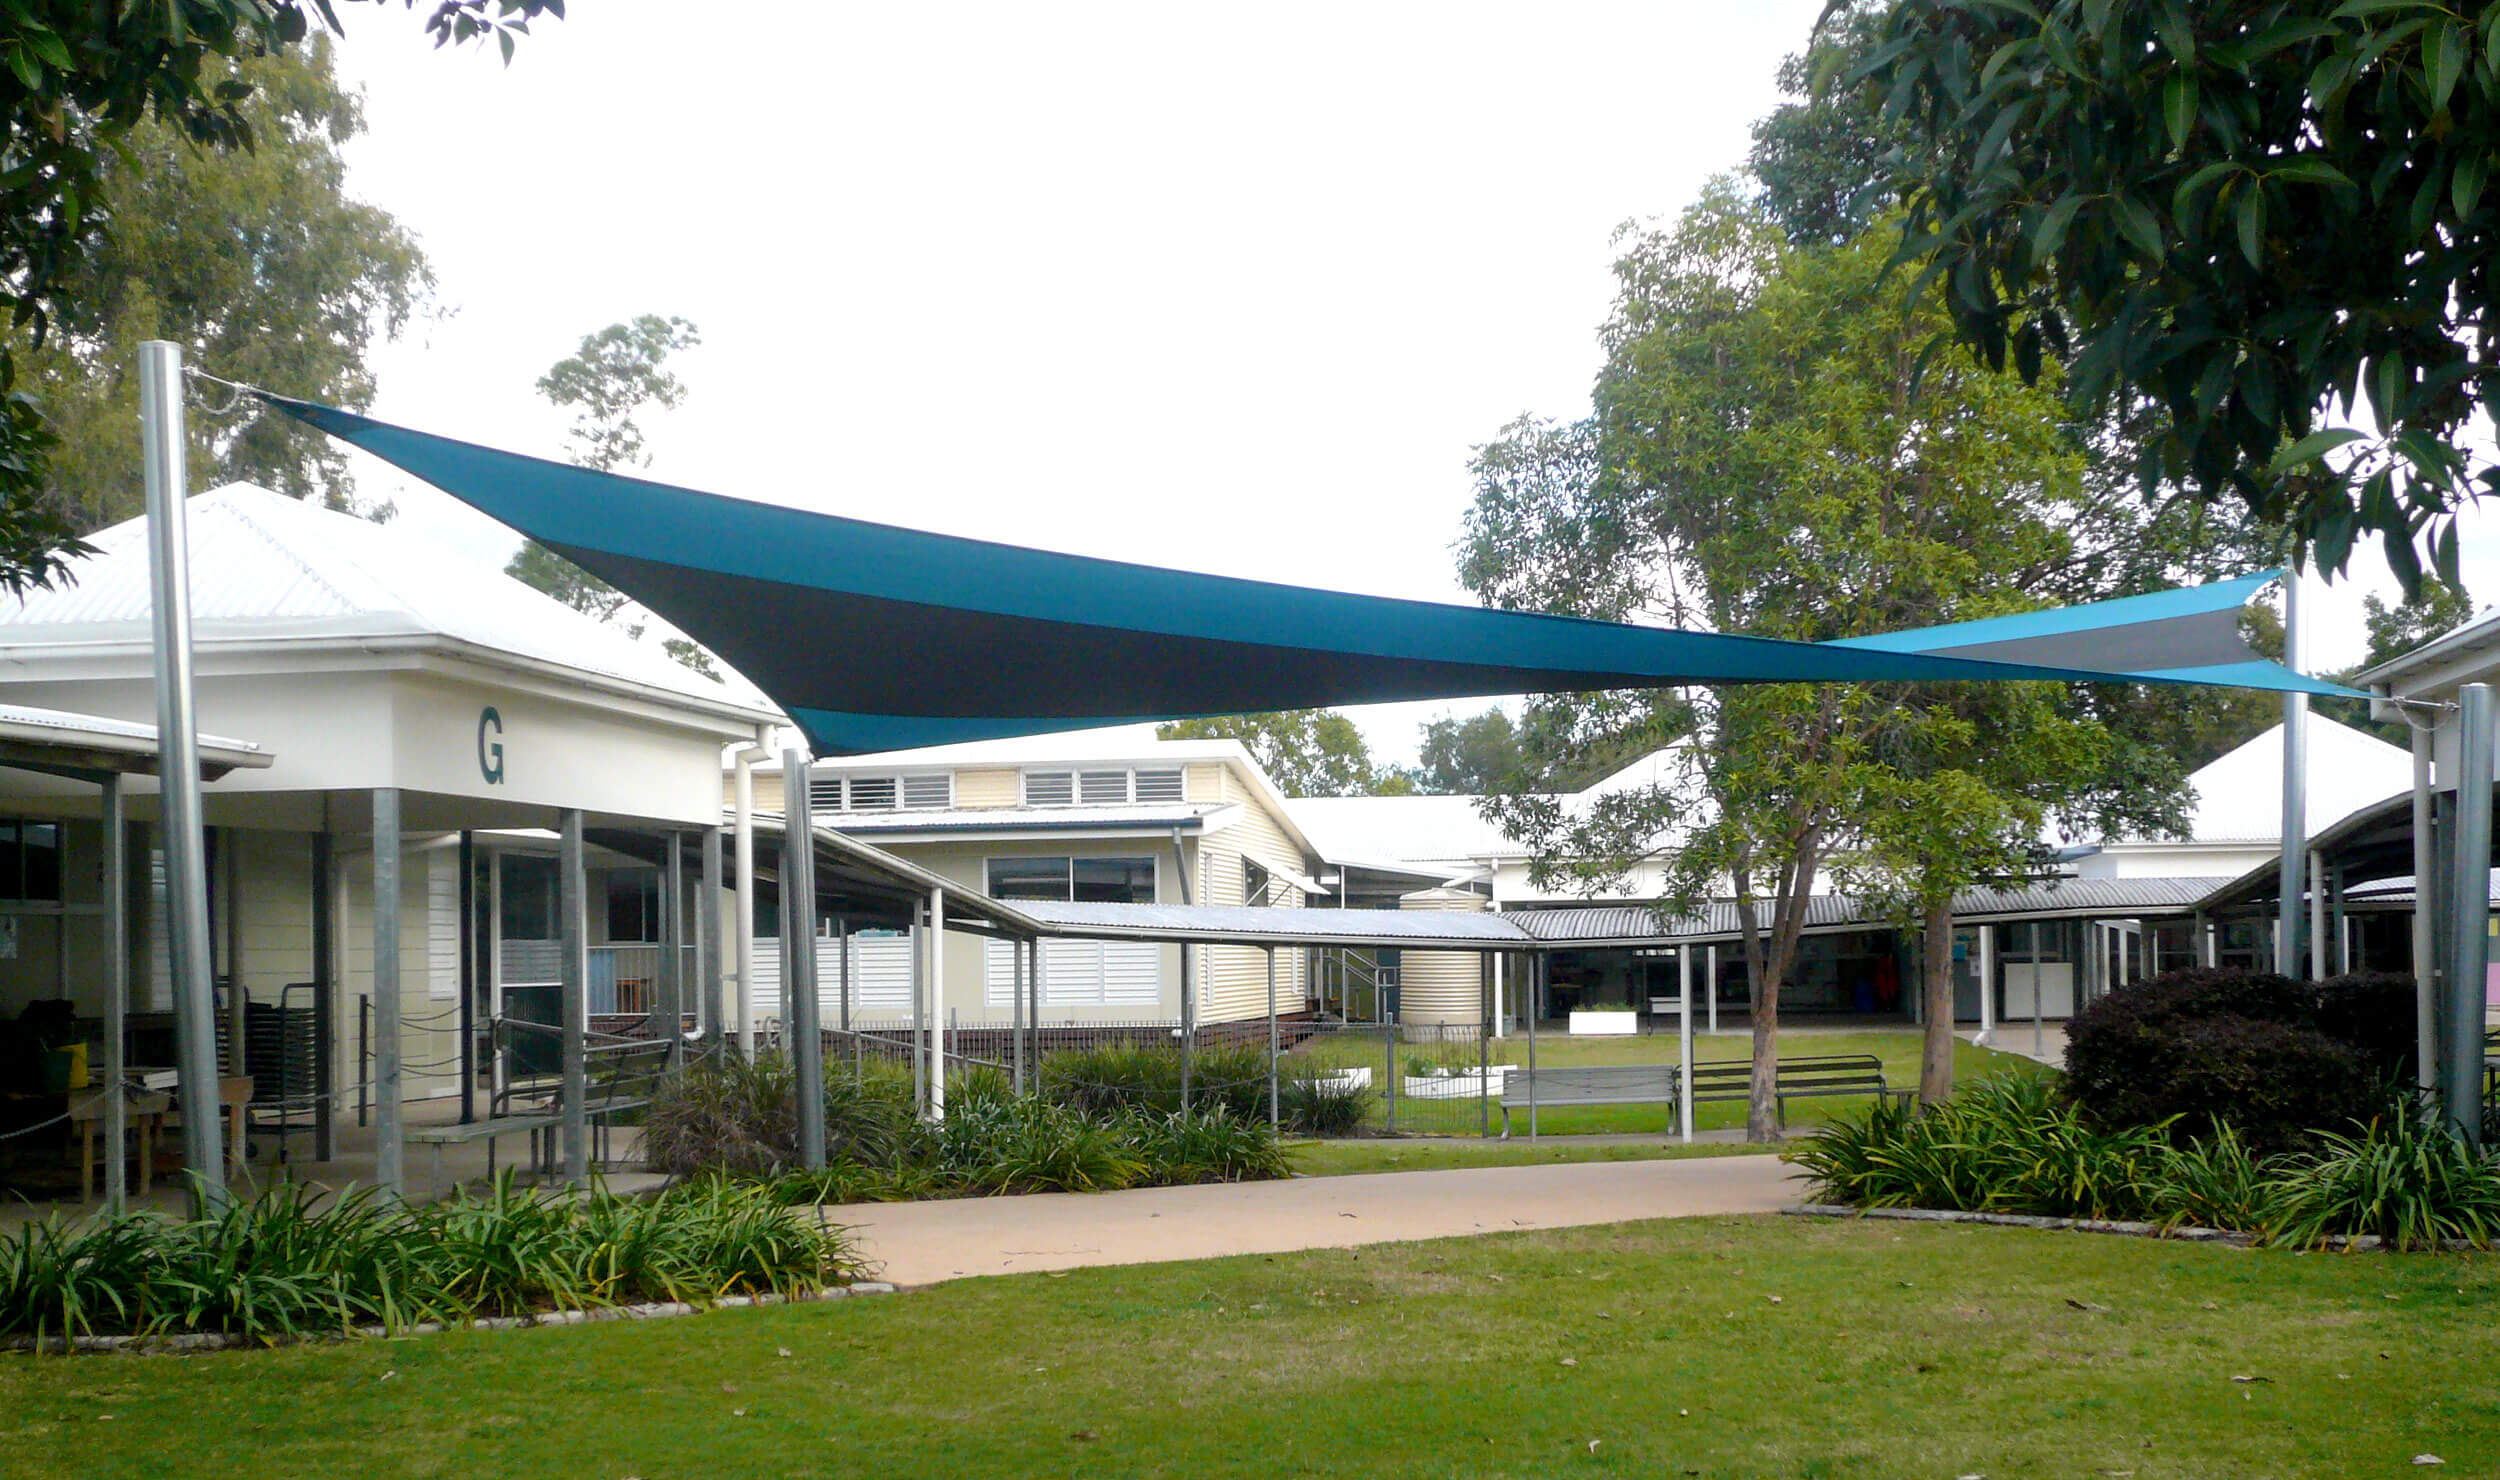 Blue Shade Sails at School